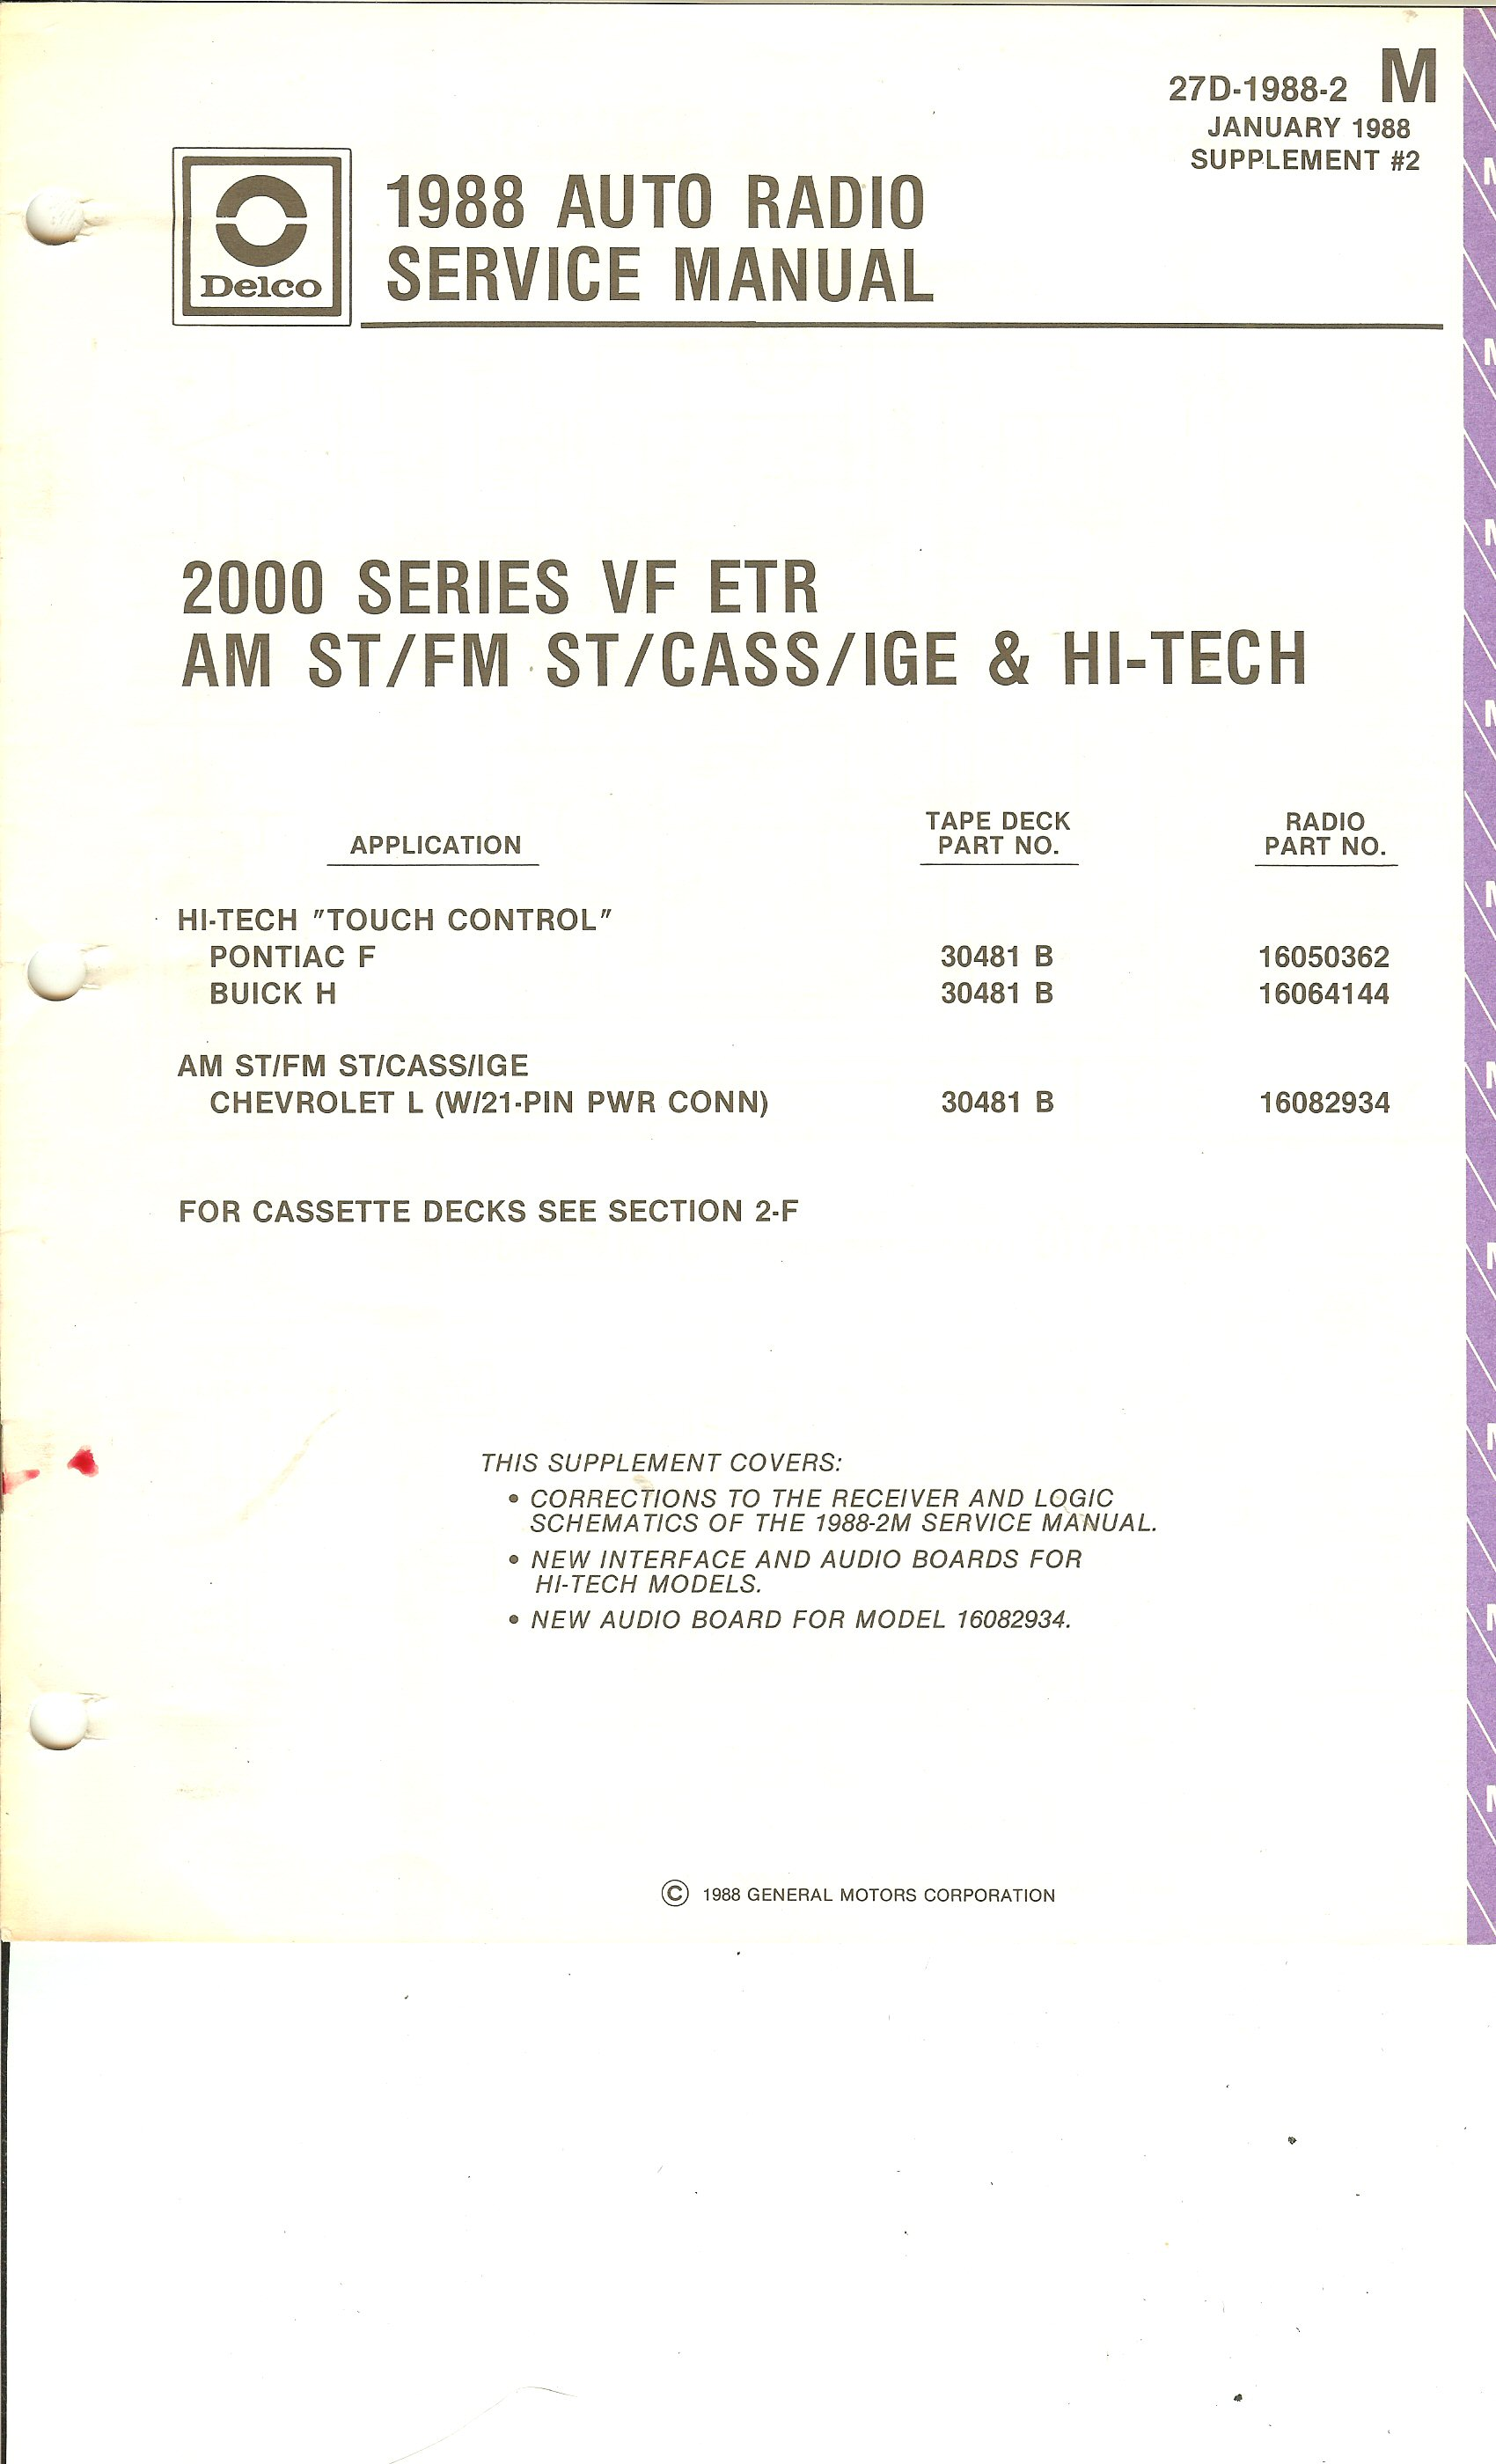 hight resolution of delco 2700 wiring diagram damaged delco repair third generation f body message boardsswitch jpg damaged delco repair manual